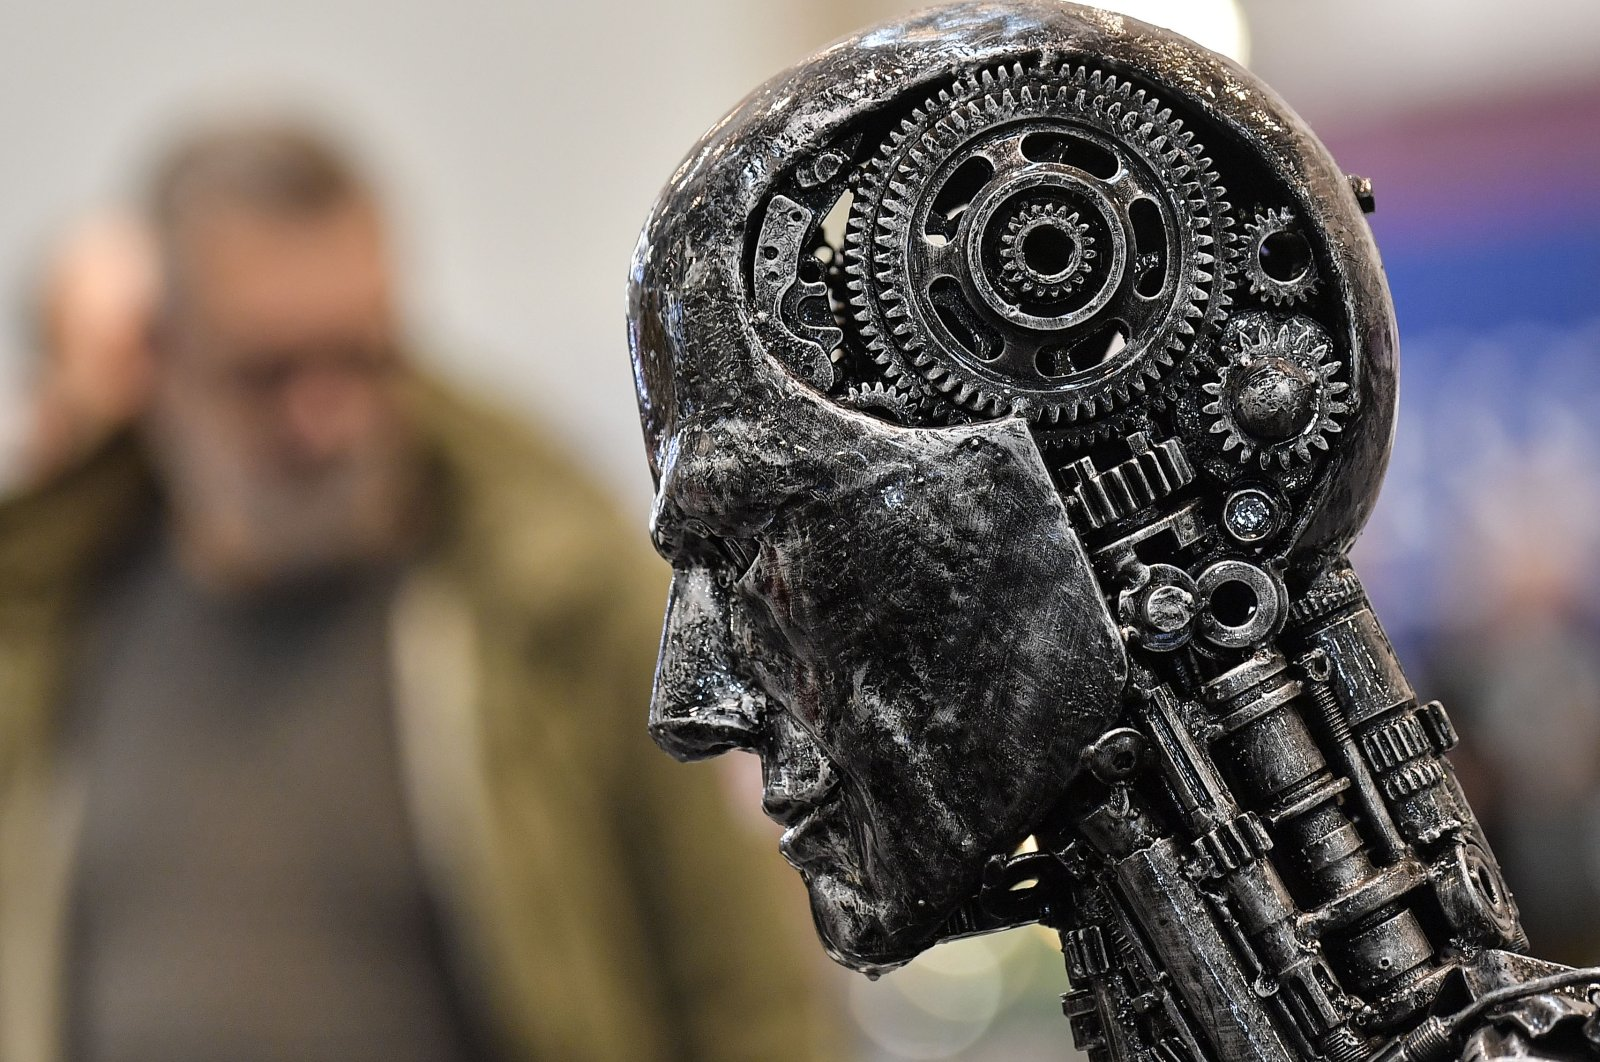 A metal head made of motor parts symbolizes artificial intelligence (AI) at a fair in Essen, Germany, Nov. 29, 2019. (AP Photo)